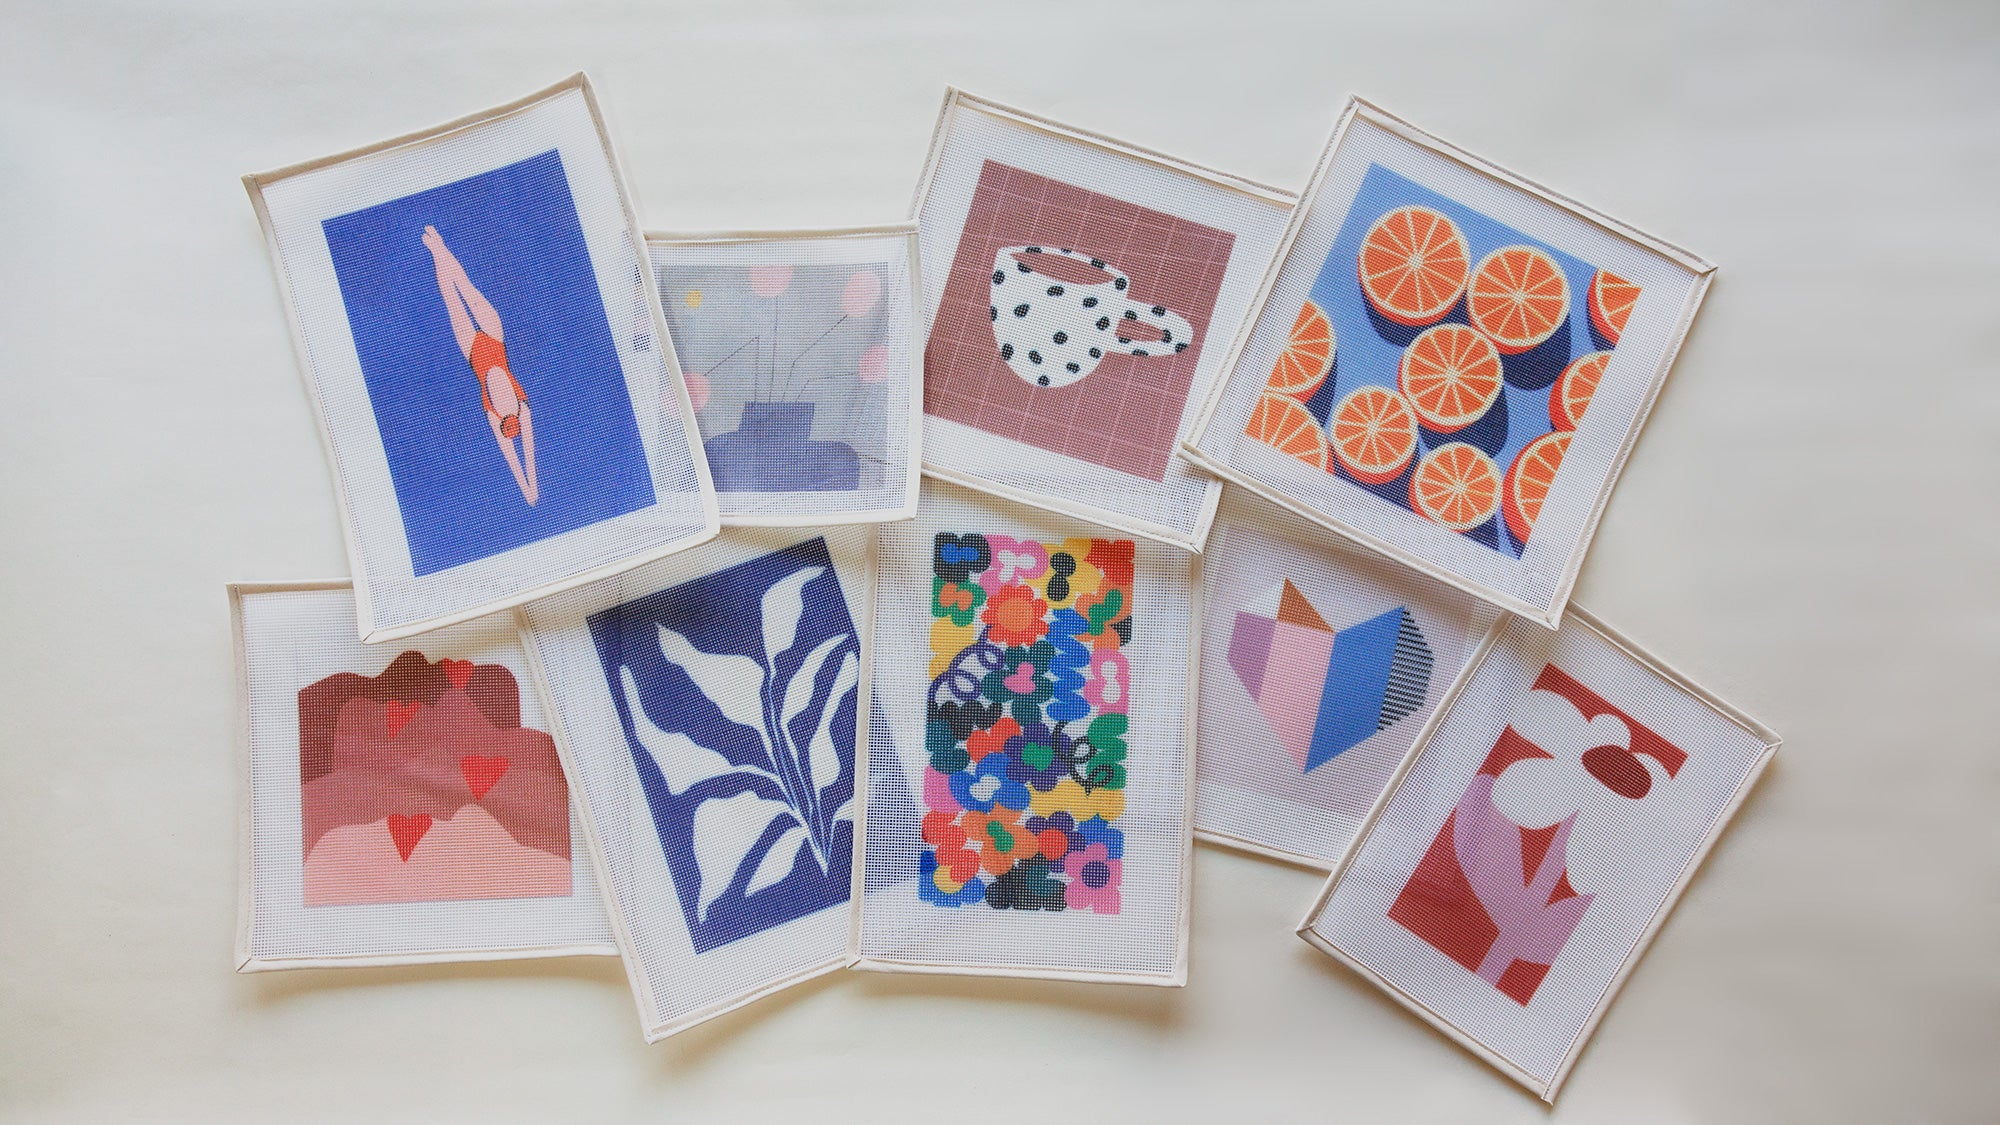 New needlepoint kits for your summer break by Unwind Studio